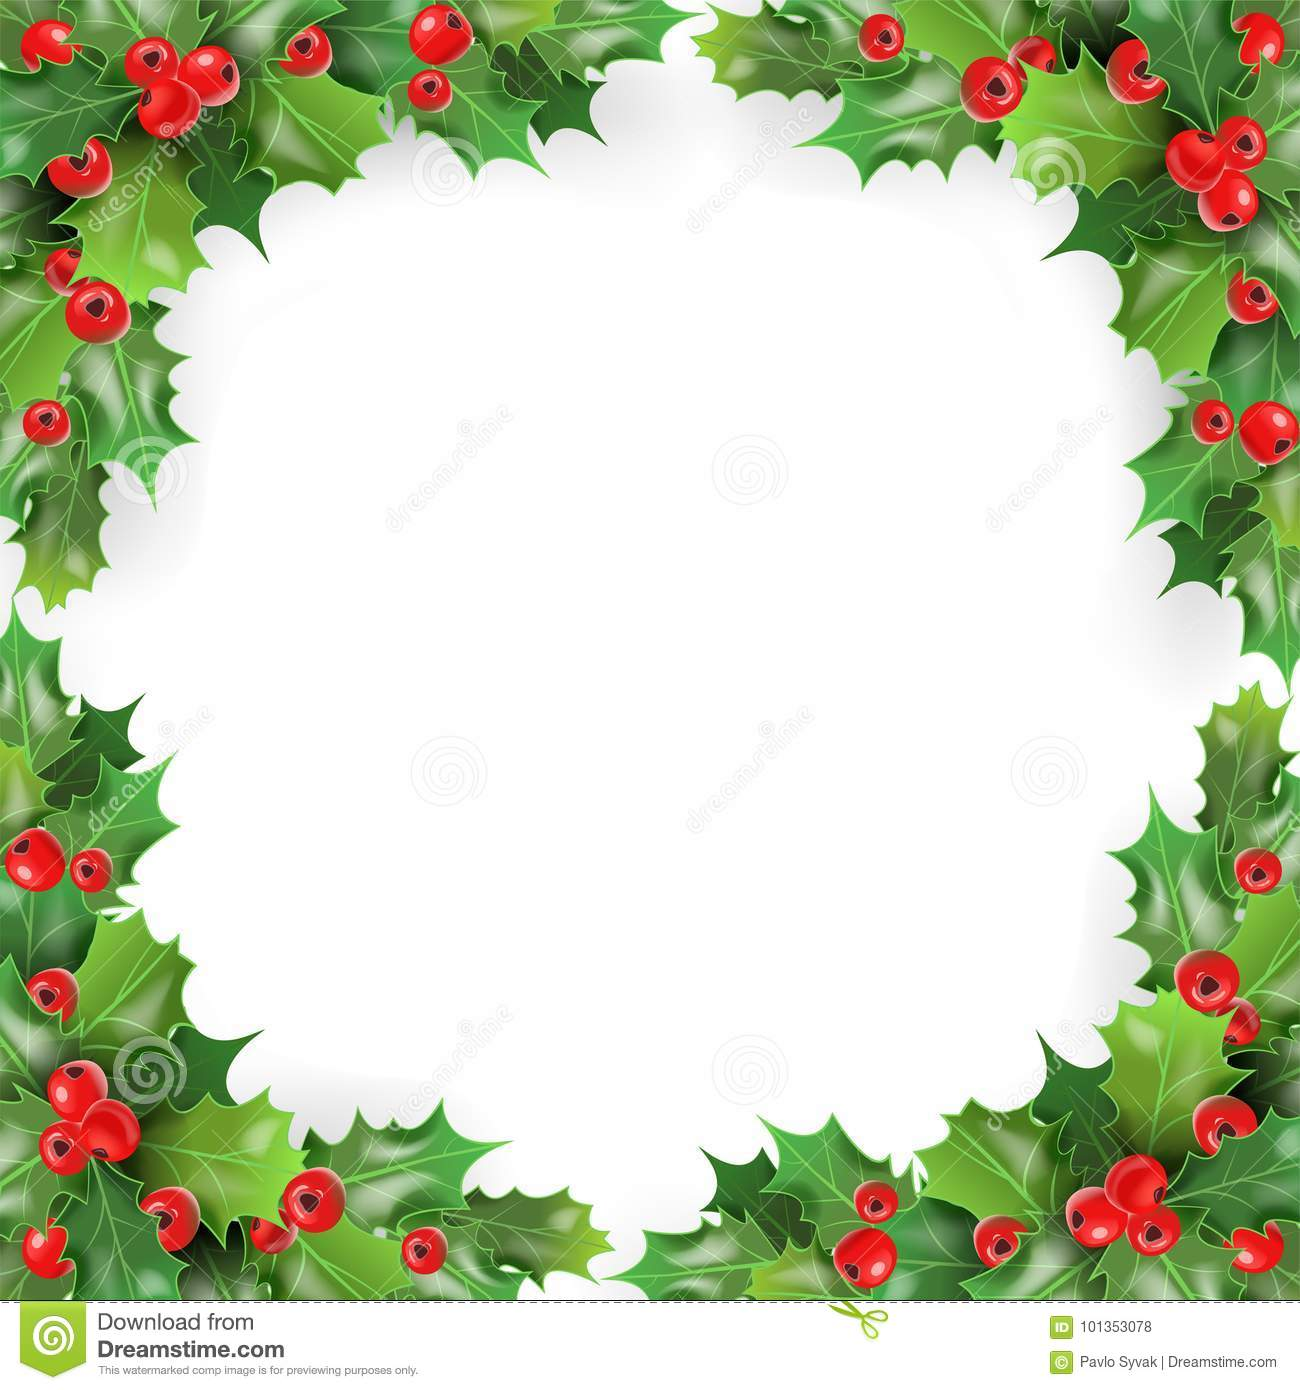 Winter holidays greeting card template creative wedding invitation merry christmas frame with mistletoe holly berries winter merry christmas frame mistletoe holly berries winter holidays greeting card template merry kristyandbryce Image collections